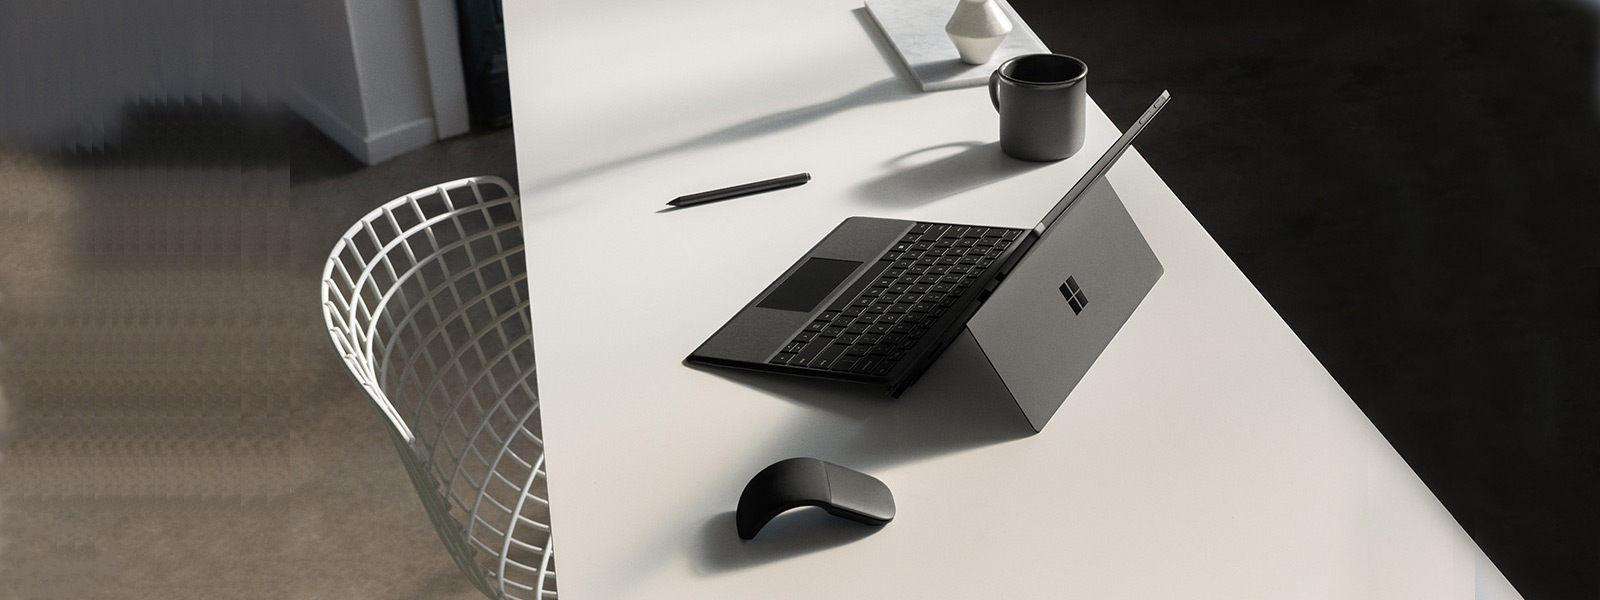 Surface Pro 6 op een bureautafel in laptopmodus met Surface Pro Type Cover, Surface-pen en Surface Arc Mouse